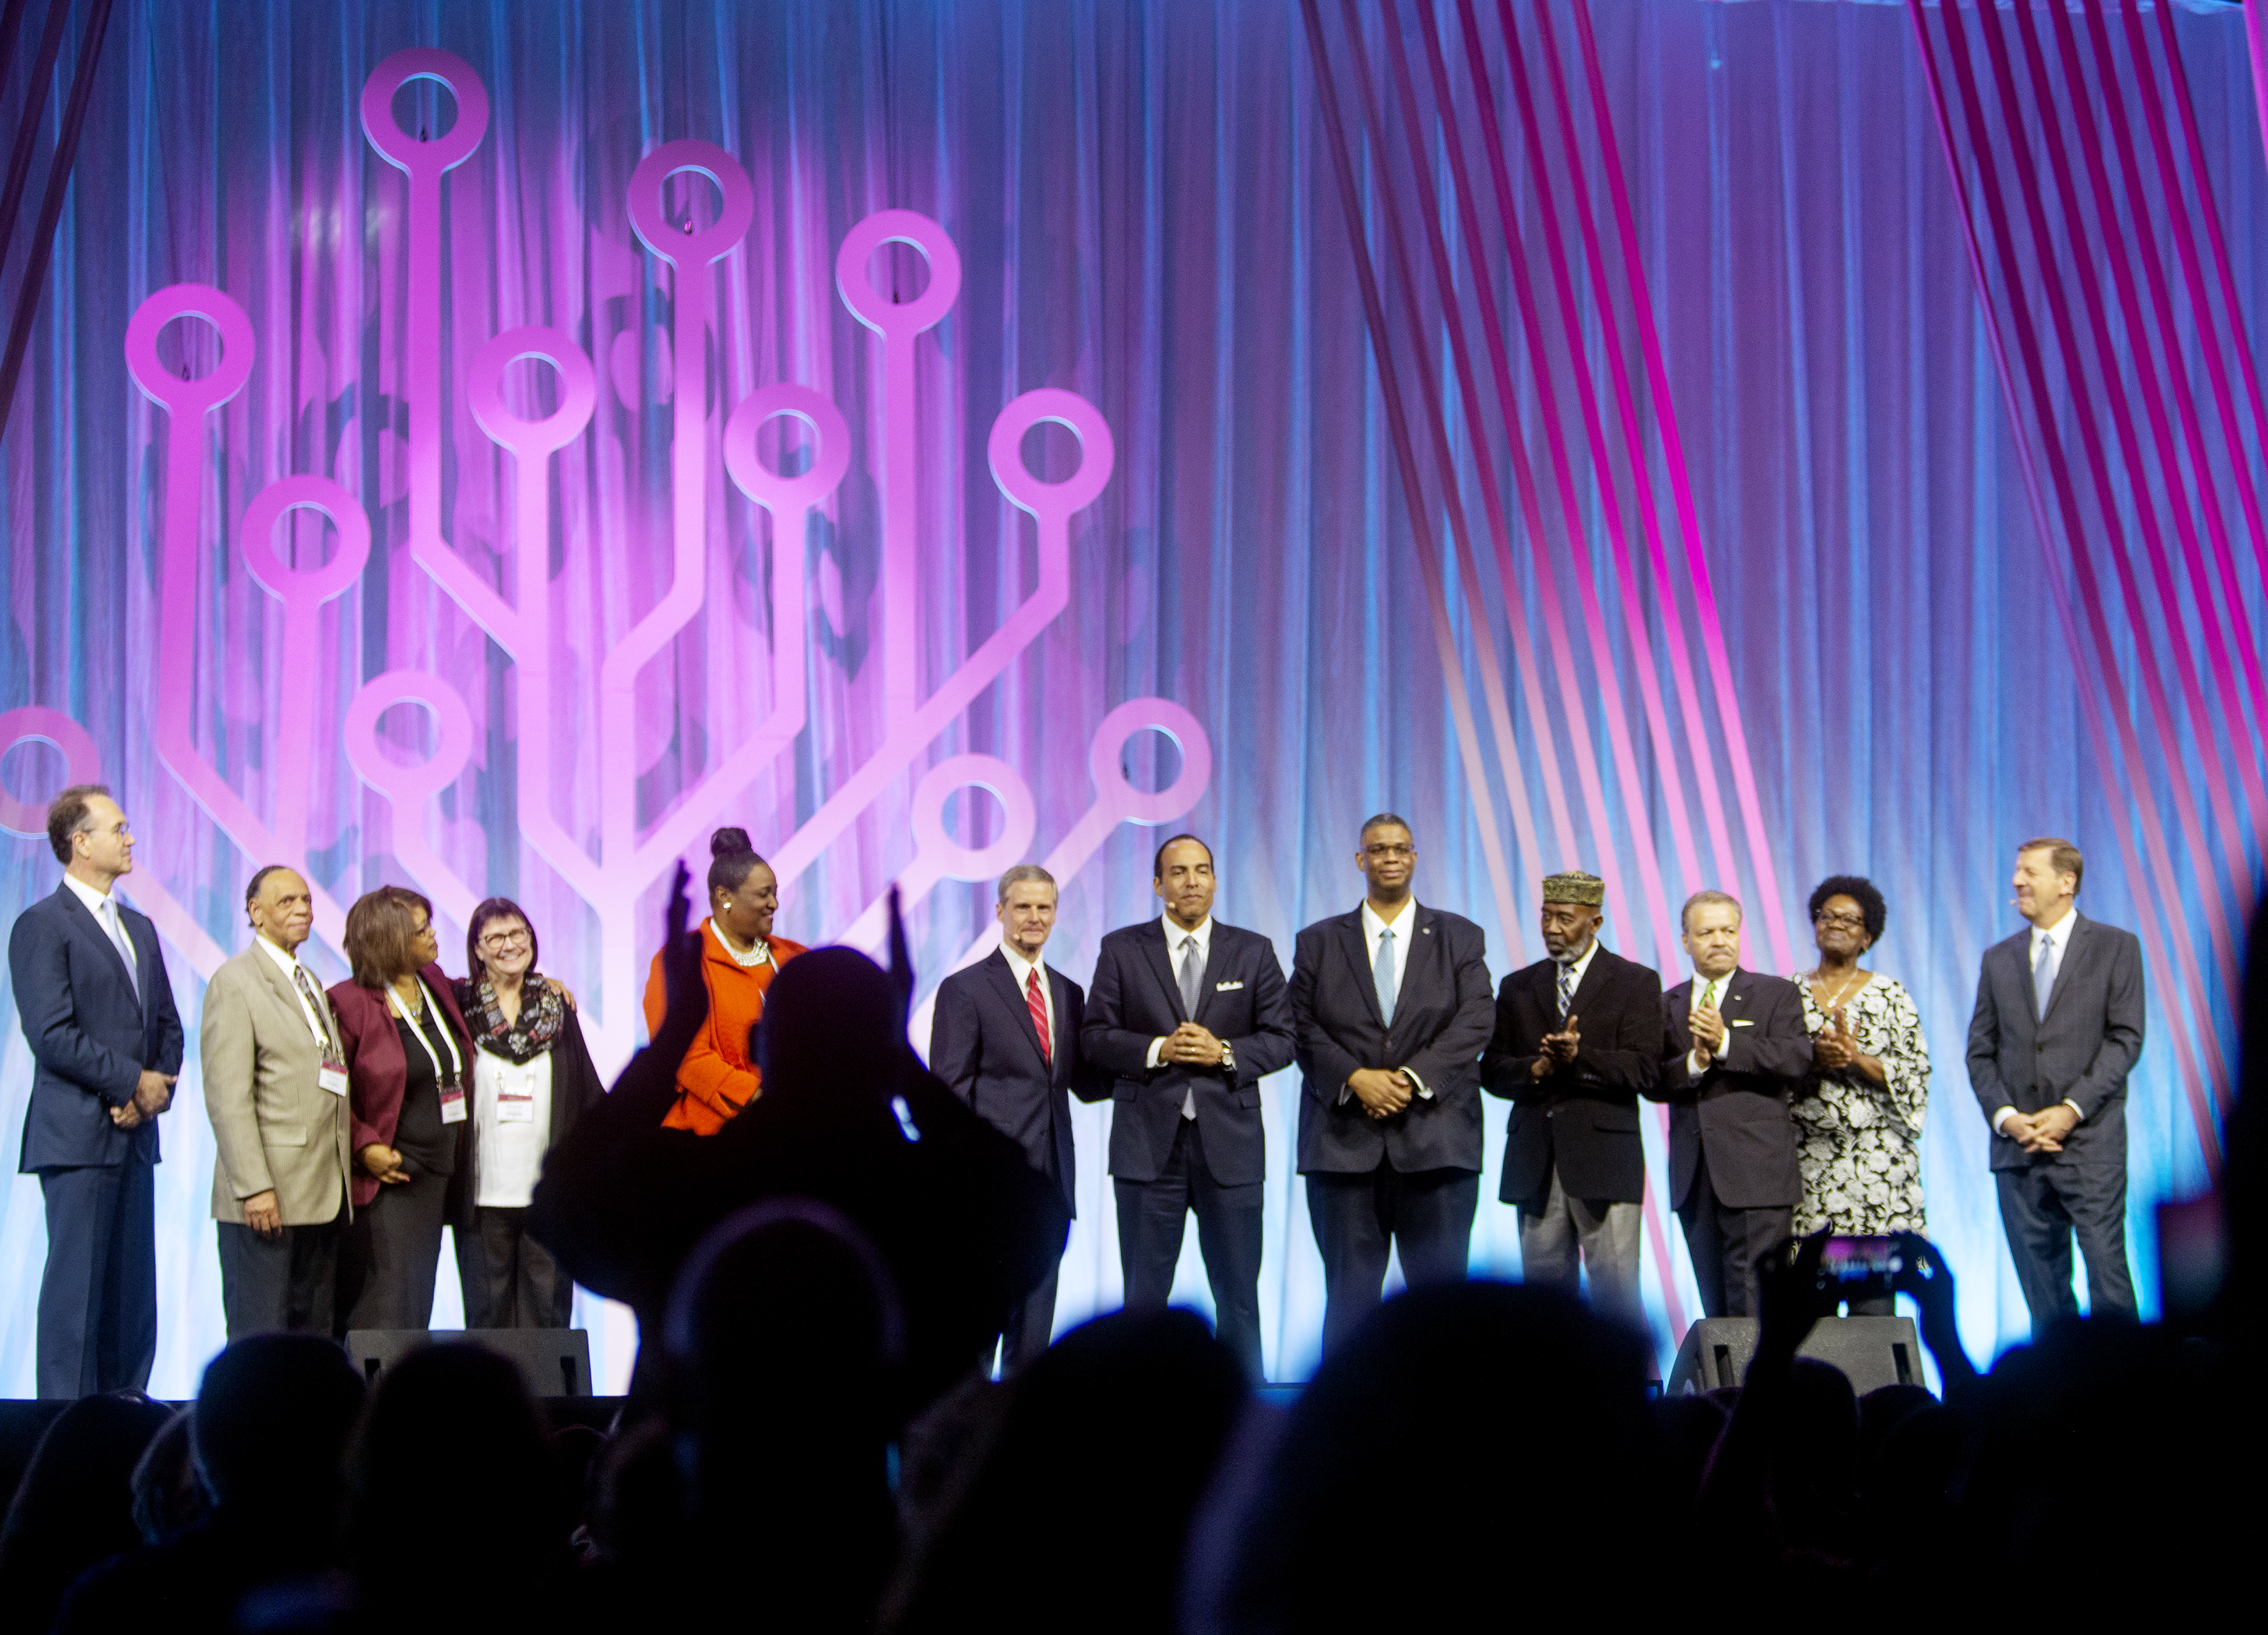 Elder David A. Bednar of the Quorum of the Twelve Apostles of The Church of Jesus Christ of Latter-day Saints announces a $2 million donation from the church to the International African American Museum Center for Family History, at Rootstech in Salt Lake City on Wednesday, Feb. 27, 2019.